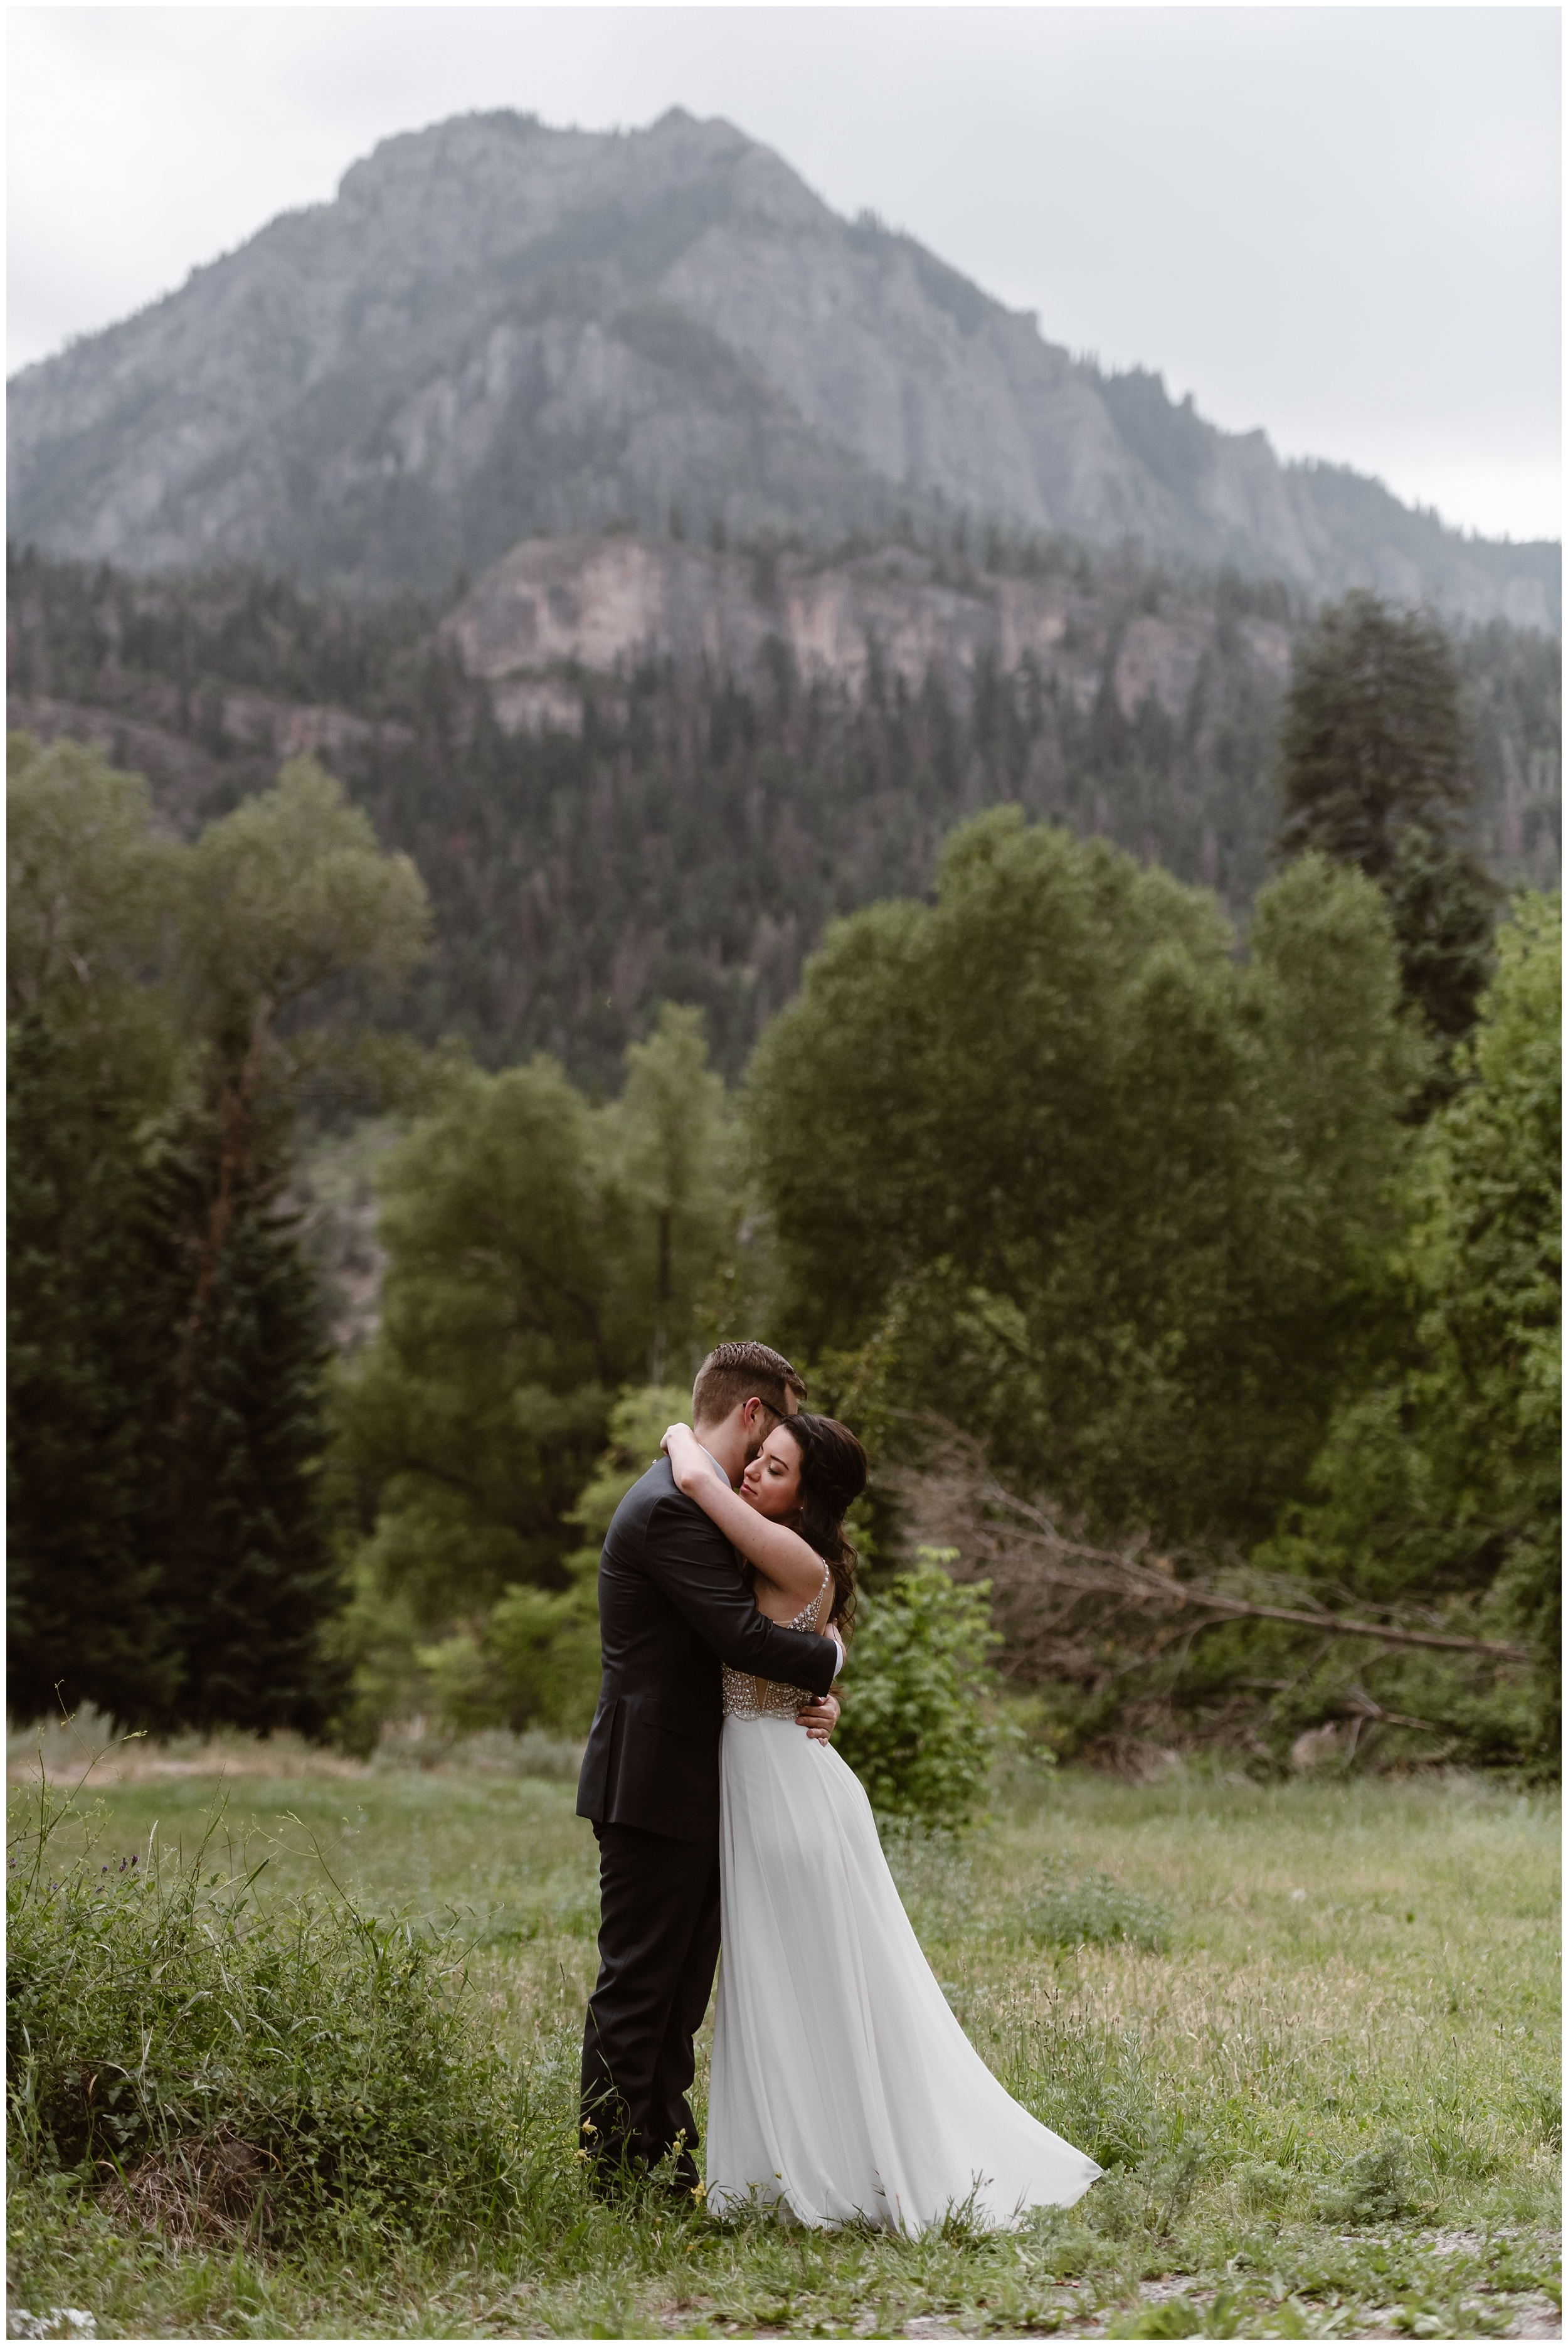 Katie and Logan, the bride and the groom, embrace sweetly moments after their first look ceremony, which is one of the unique eloping ideas that many couples choose as part of their small simple wedding. These adventure elopement photos, as well as their 4x4 wedding photos, were captured by adventure wedding photographer Adventure Instead.